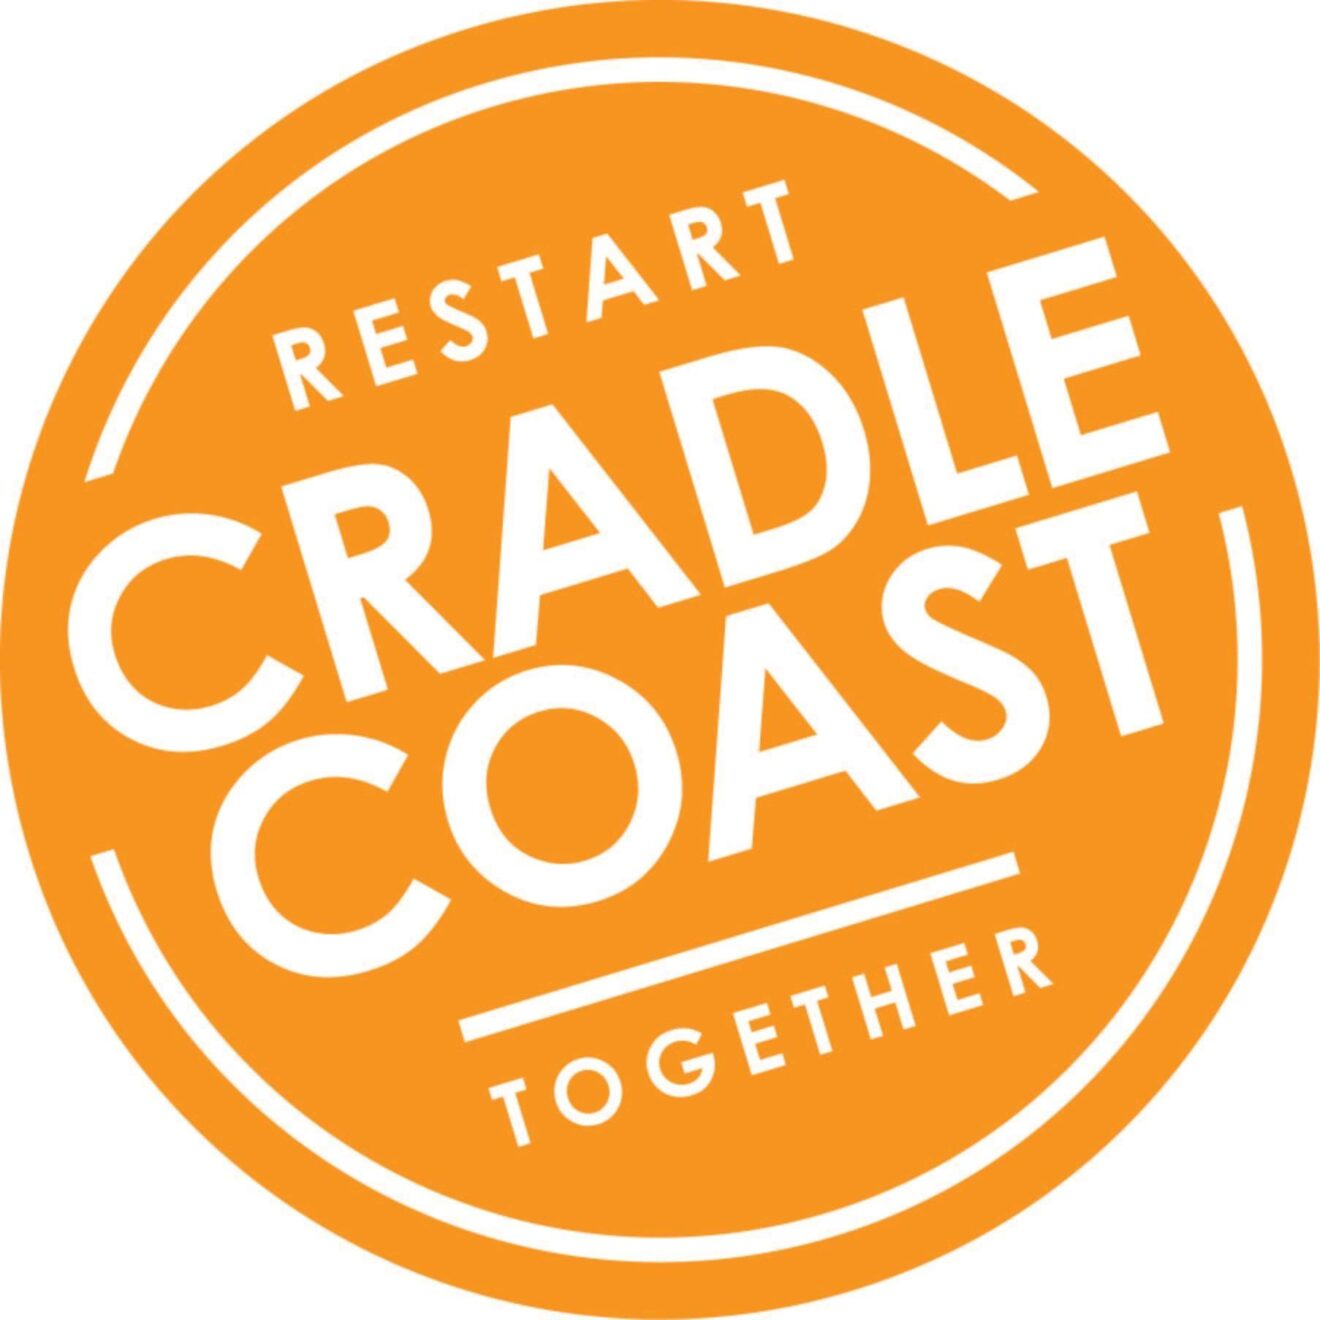 cradle coast authority logo